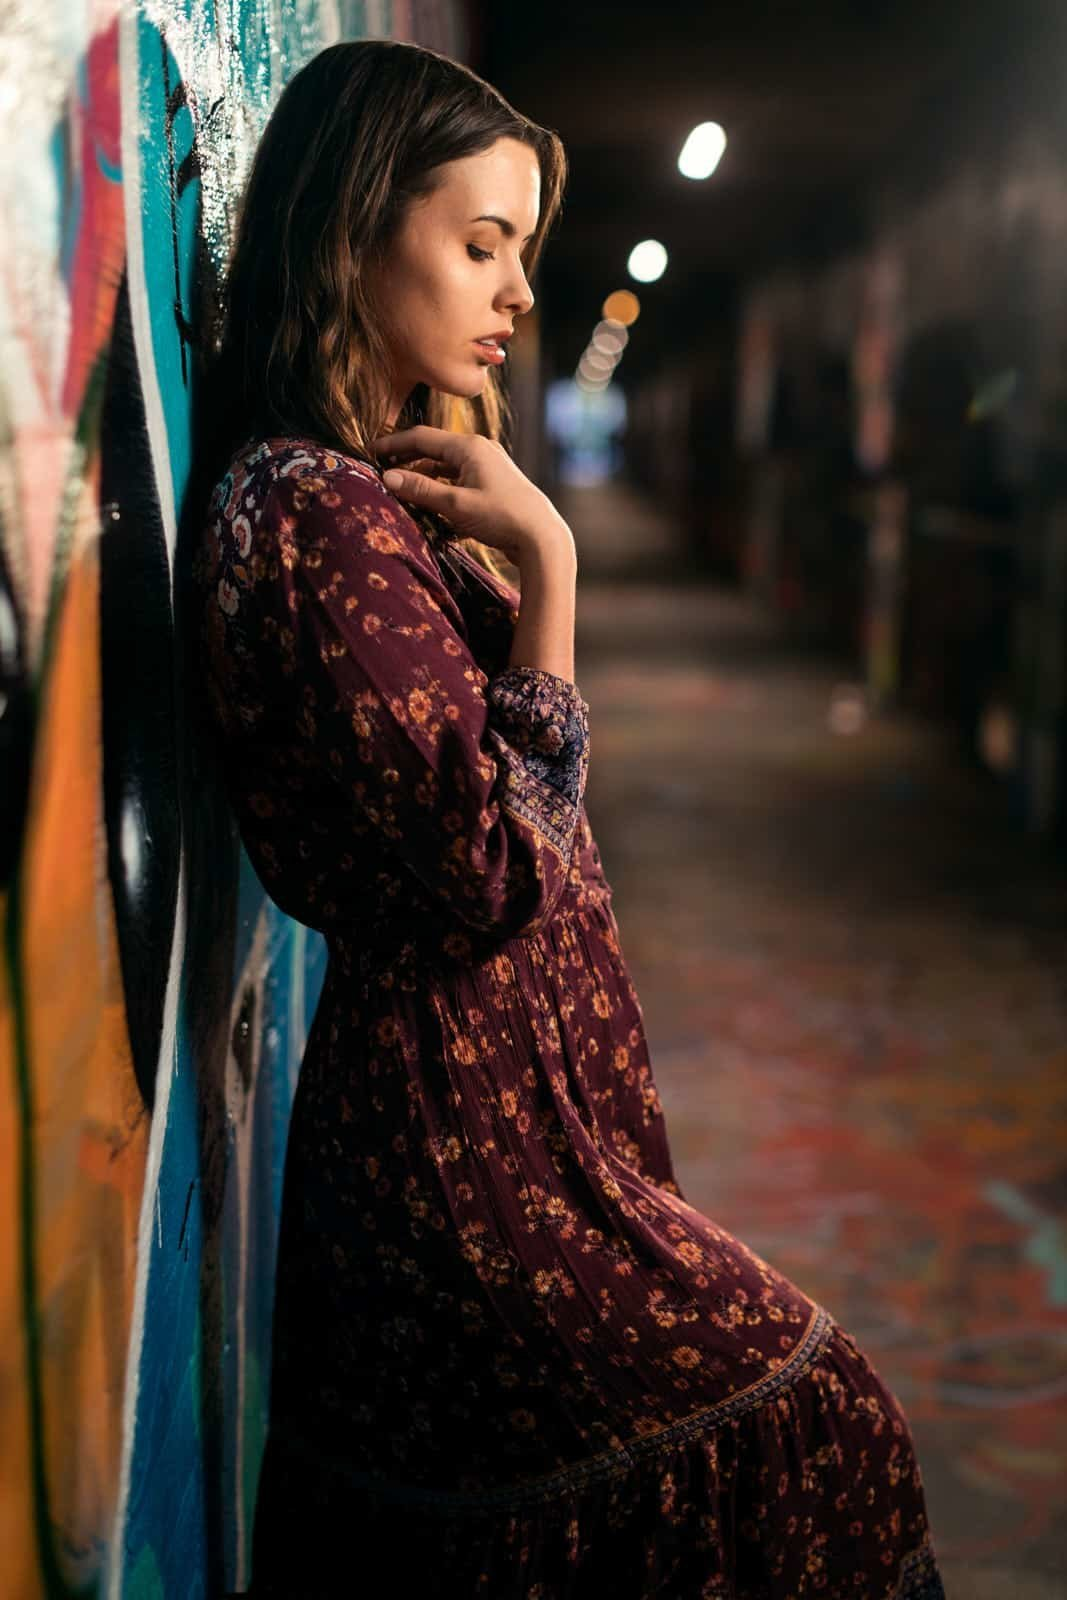 floral dress girl leans against graffiti wall of Krog Street Tunnel Atlanta